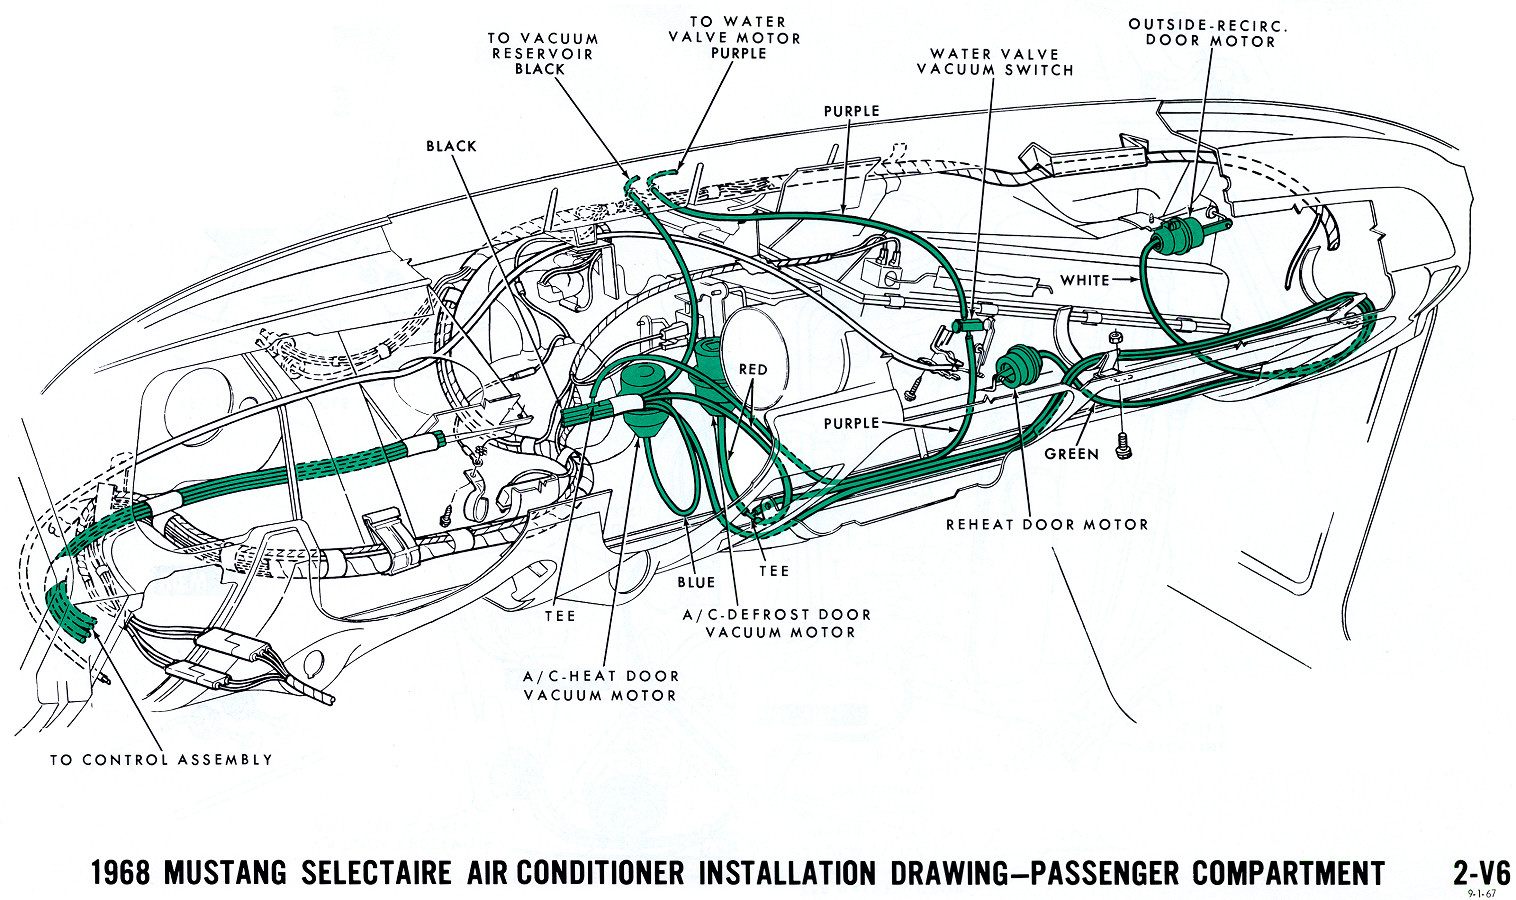 1968 mustang vacuum diagram air conditioning interior 1968 mustang wiring diagrams and vacuum schematics average joe Simple Control Diagram at edmiracle.co